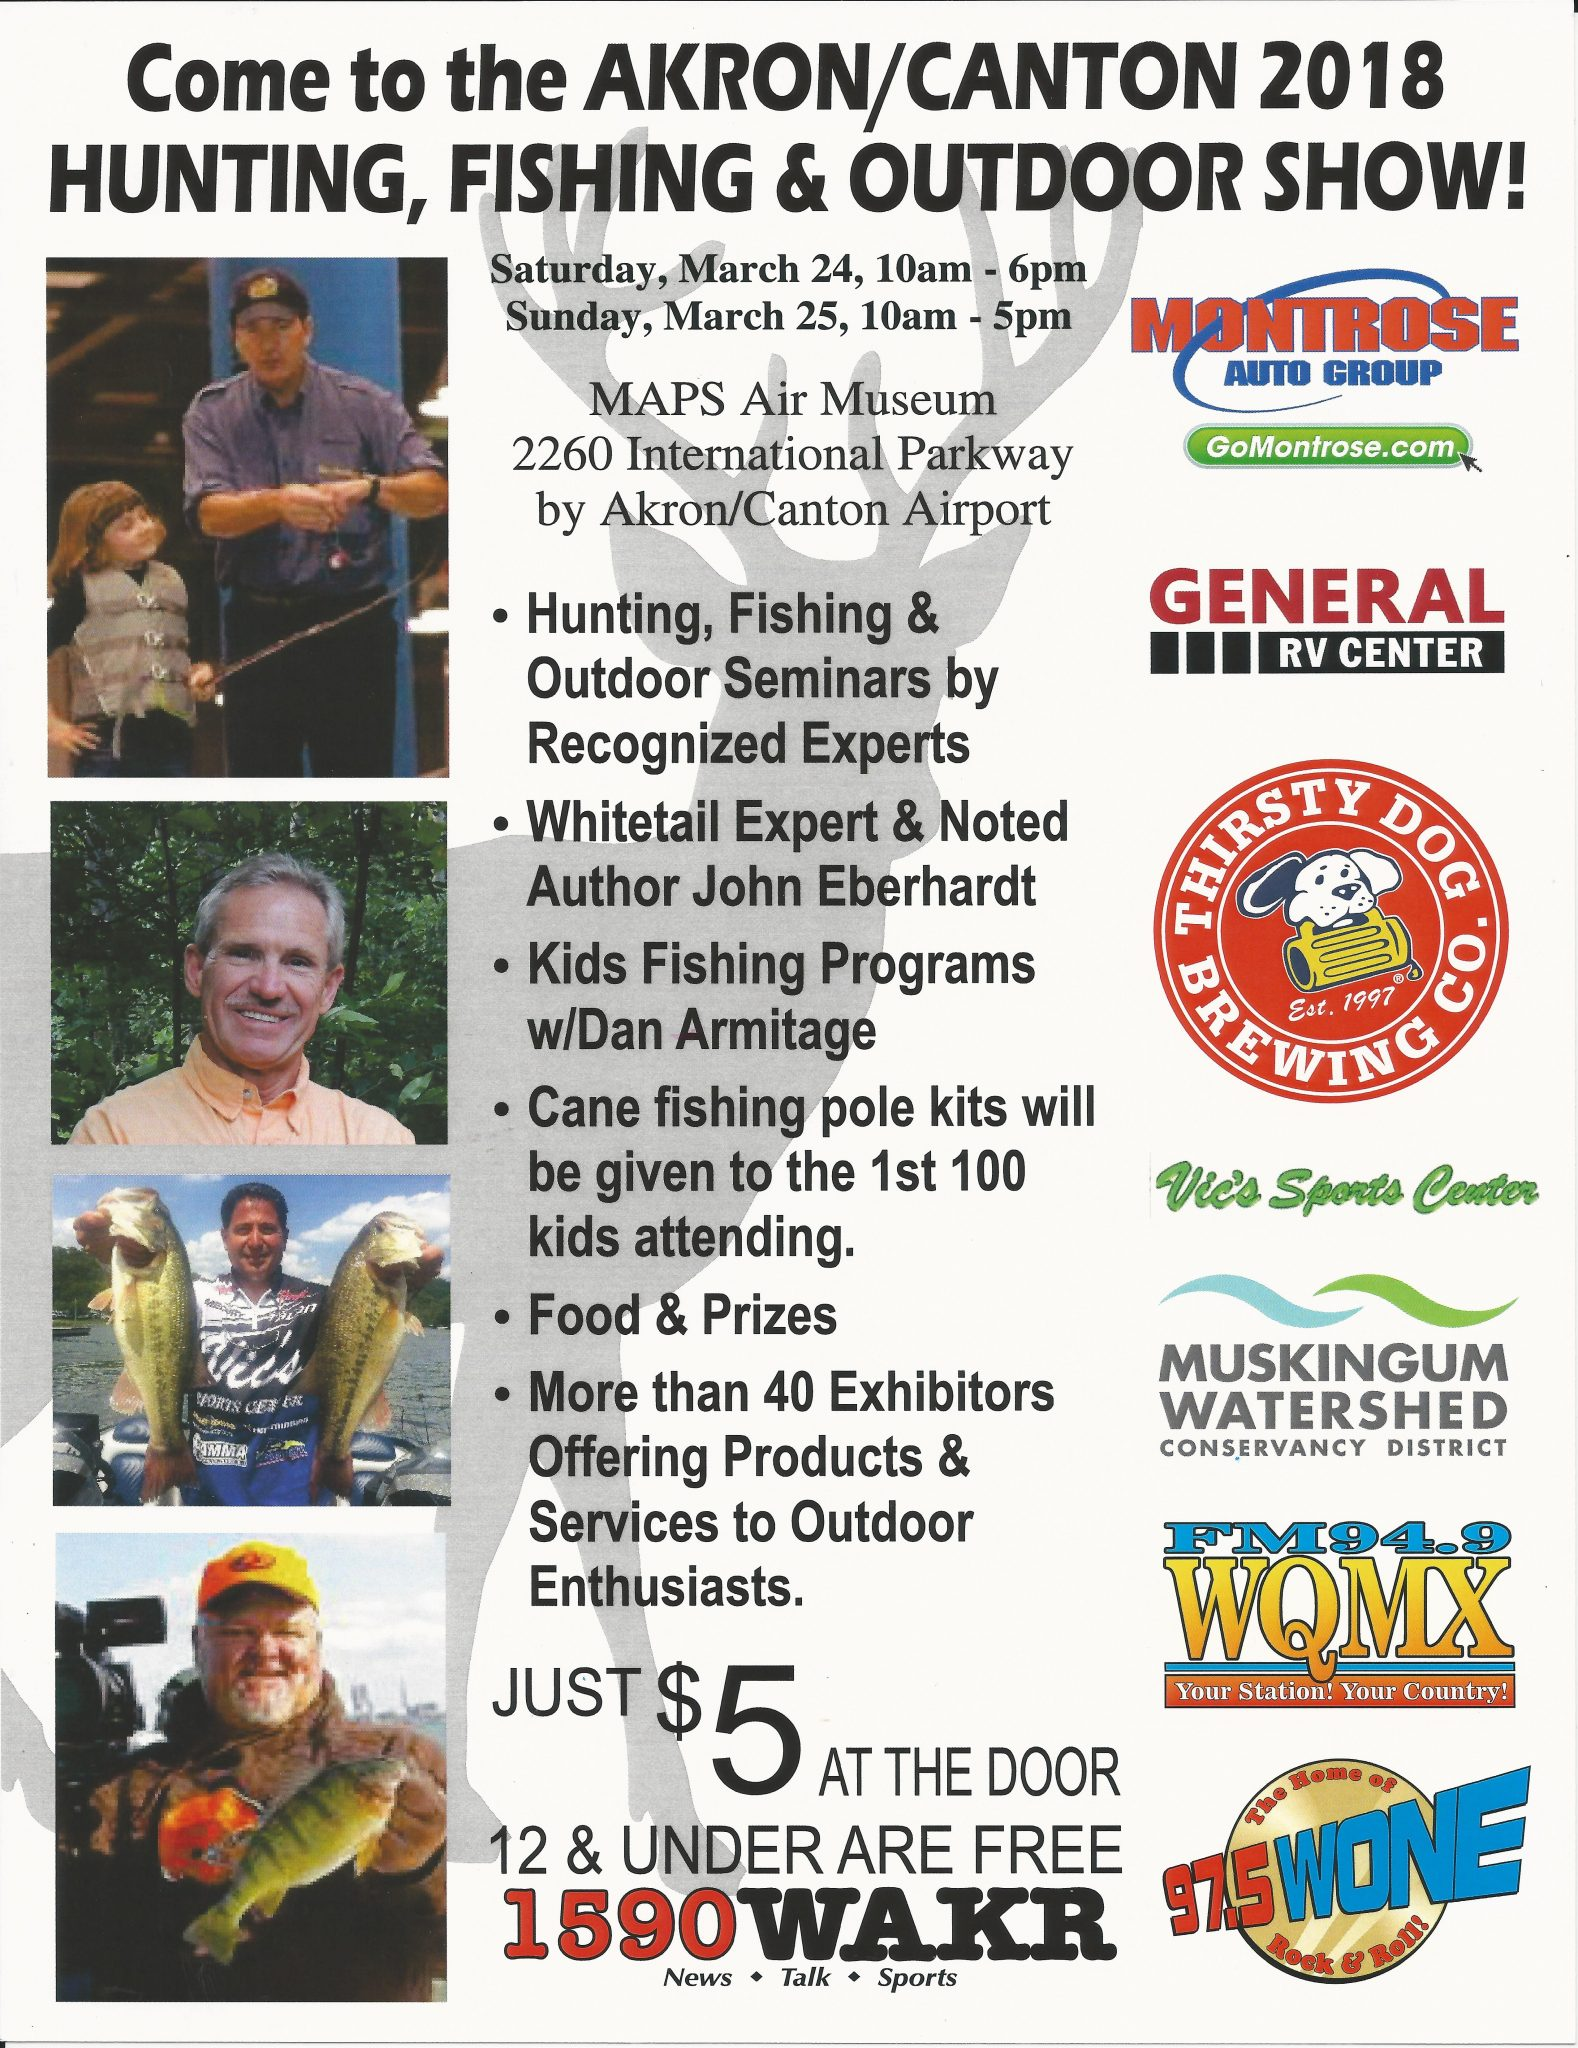 Wone 97 5 fm wqmx 94 9 fm and wakr 1590 presents 2018 for Hunting and fishing show